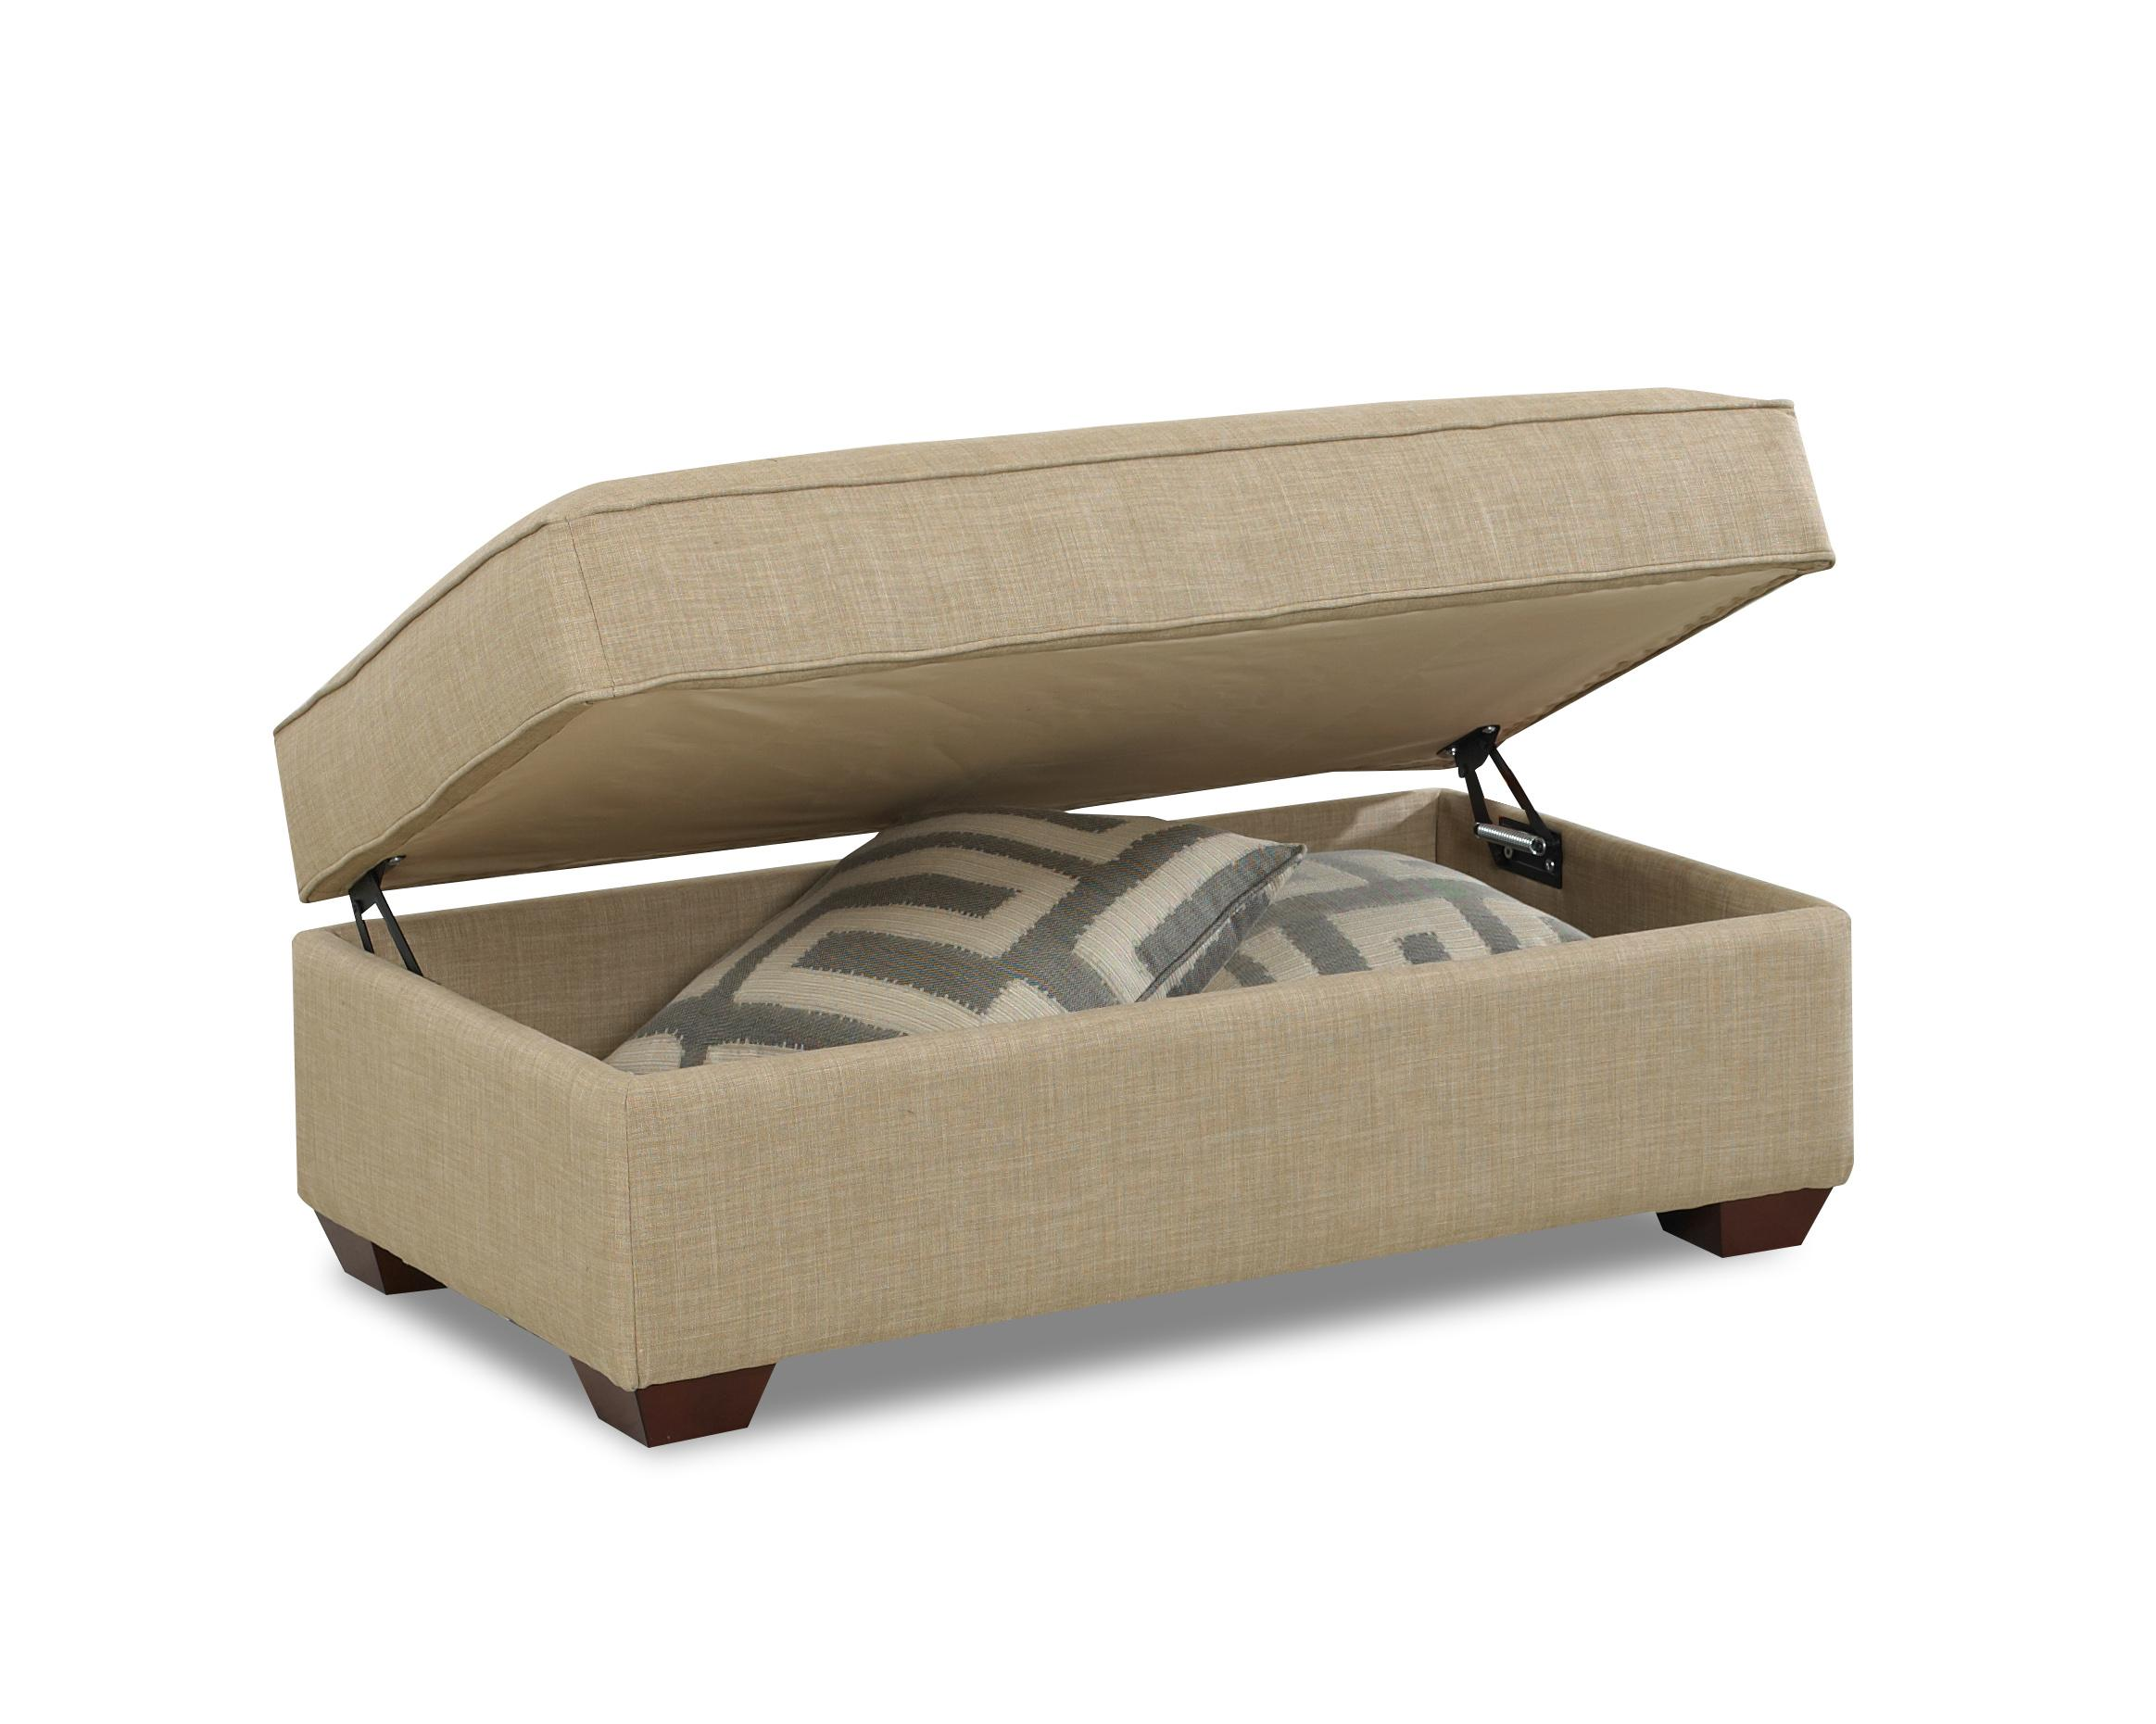 High Quality Contemporary Storage Ottoman